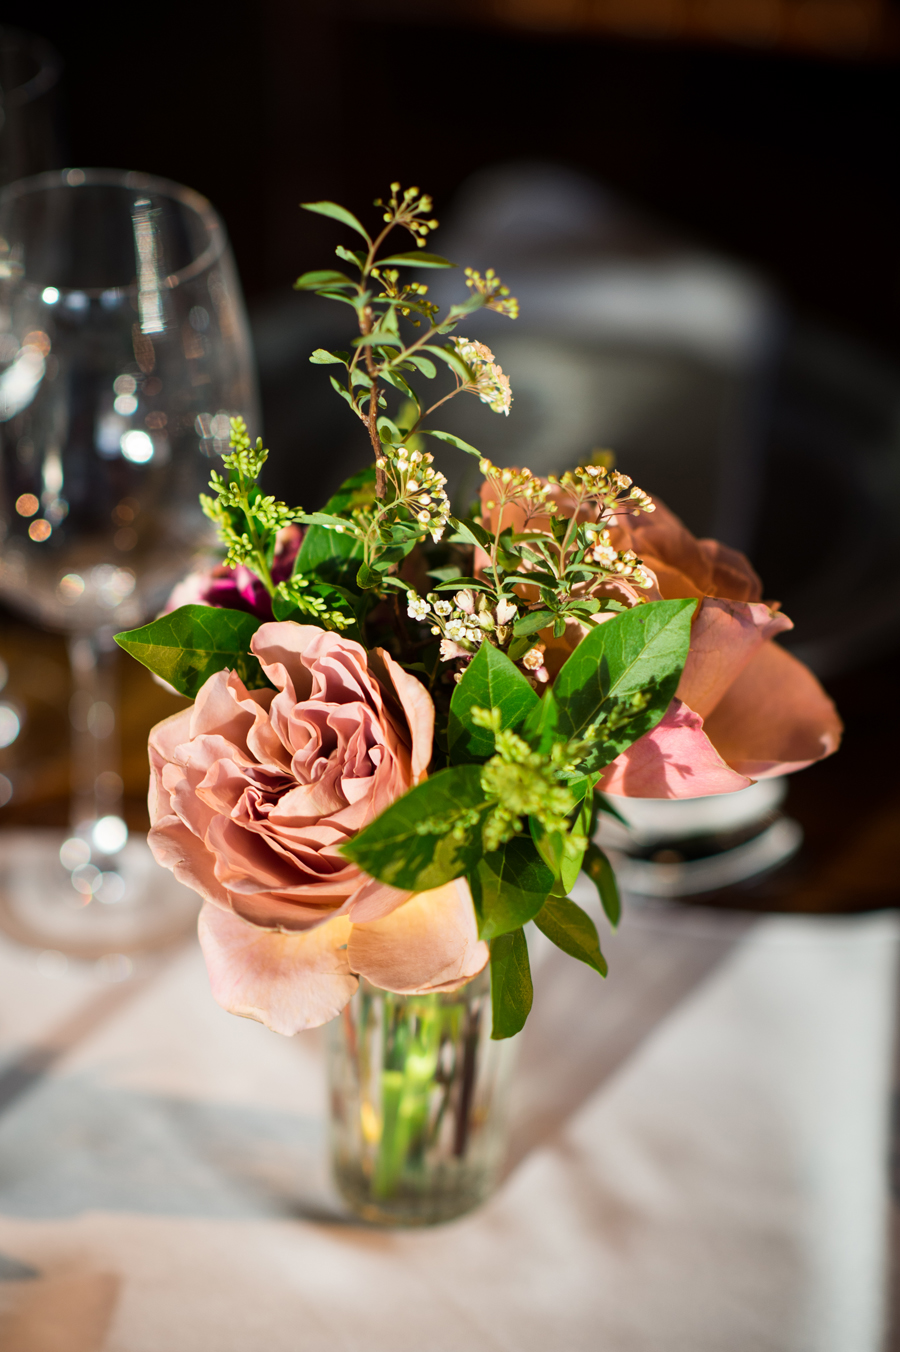 rust-salmon-rose-centerpiece-small-bud-vase